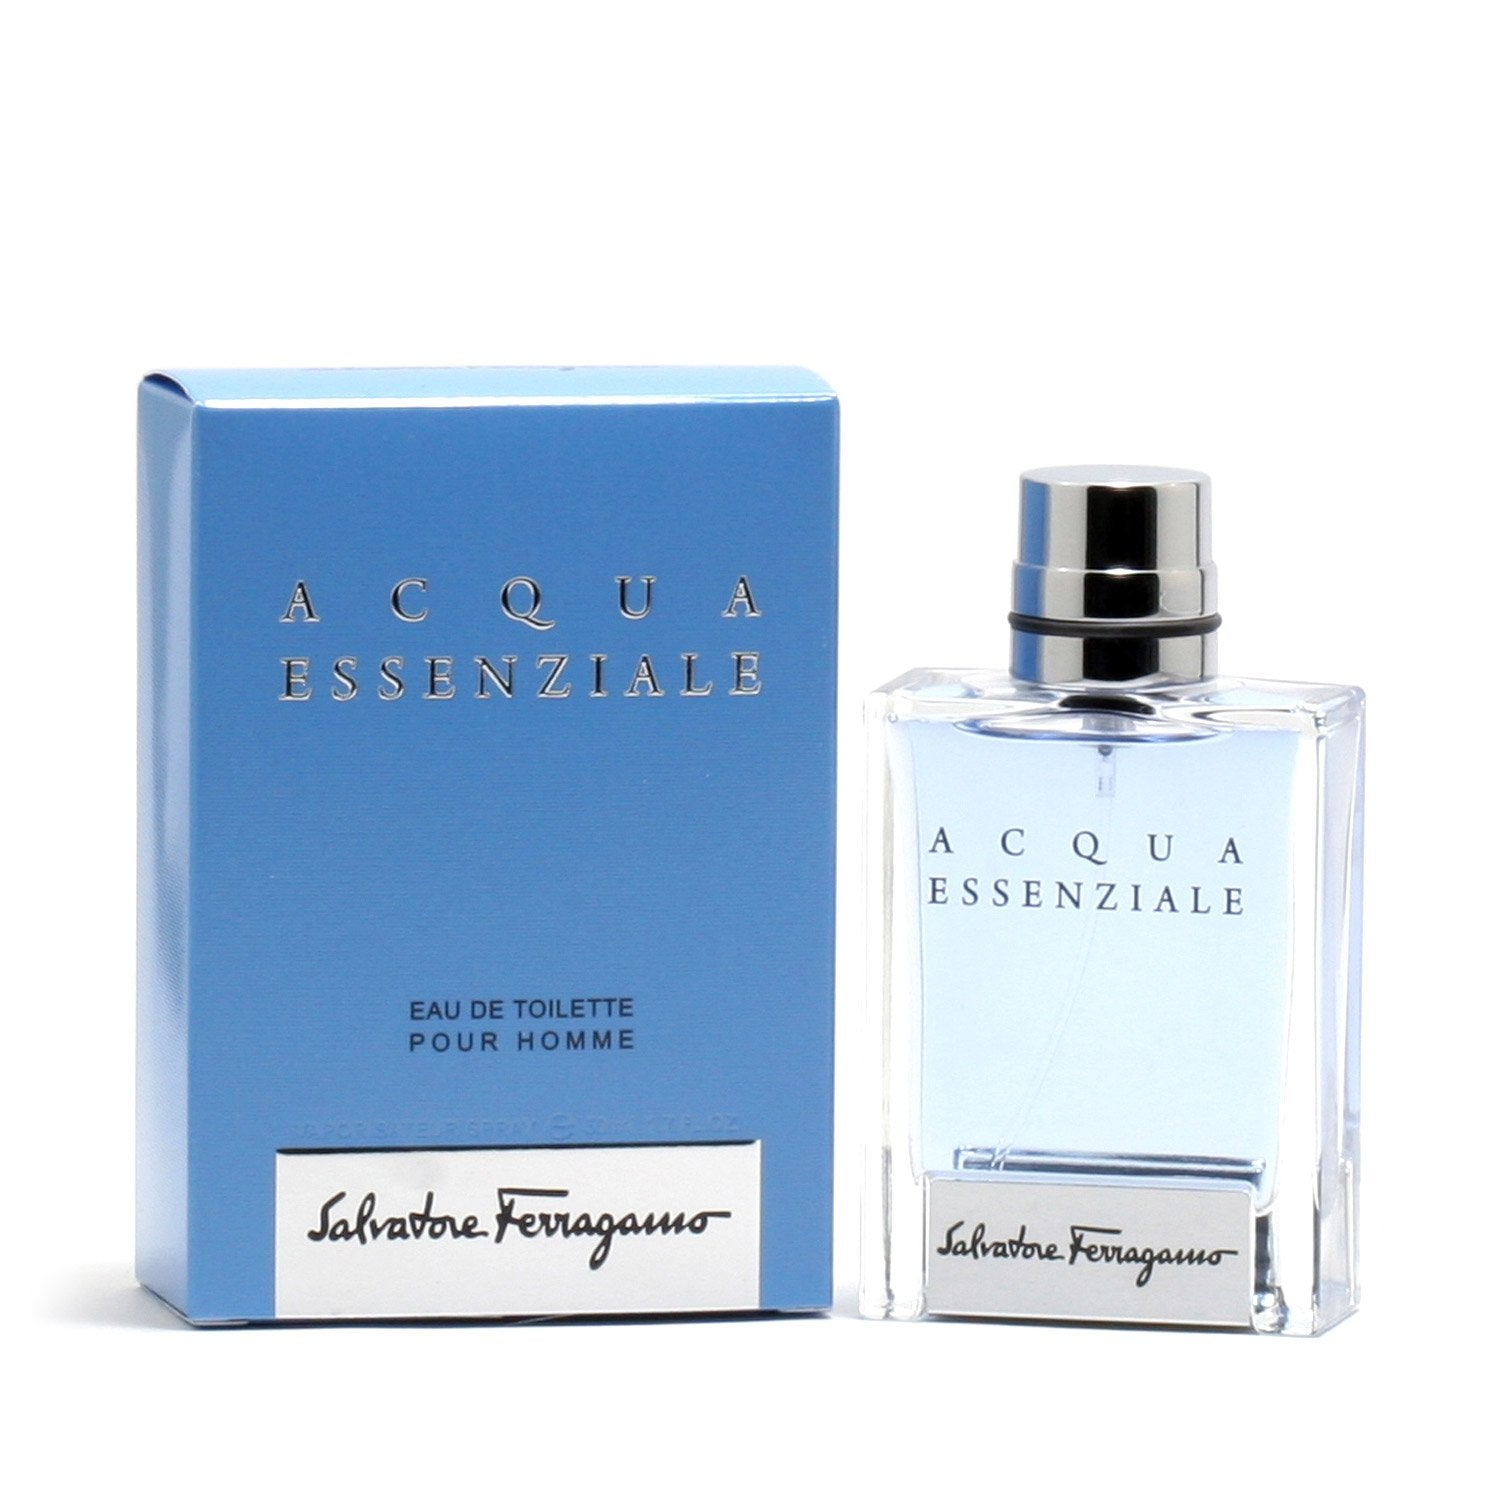 Cologne - ACQUA ESSENZIALE FOR MEN BY SALVATORE FERRAGAMO - EAU DE TOILETTE SPRAY, 1.7 OZ